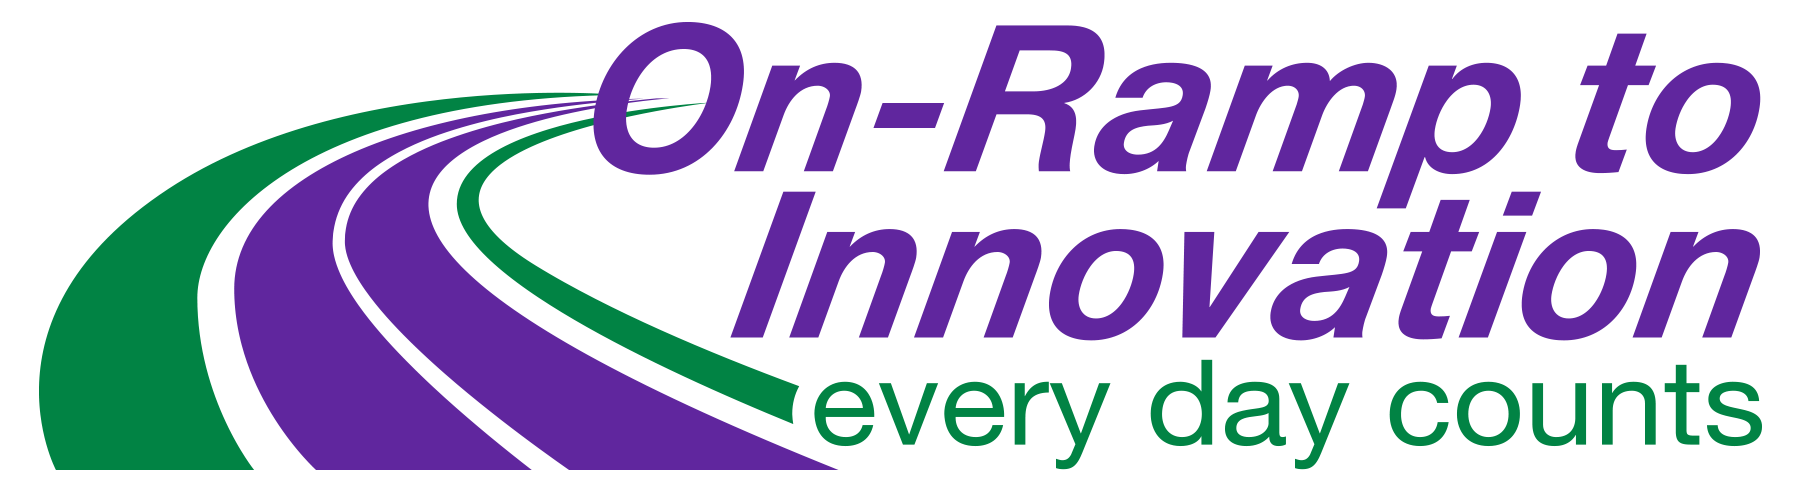 On-Ramp to Innovation Everyday Counts logo